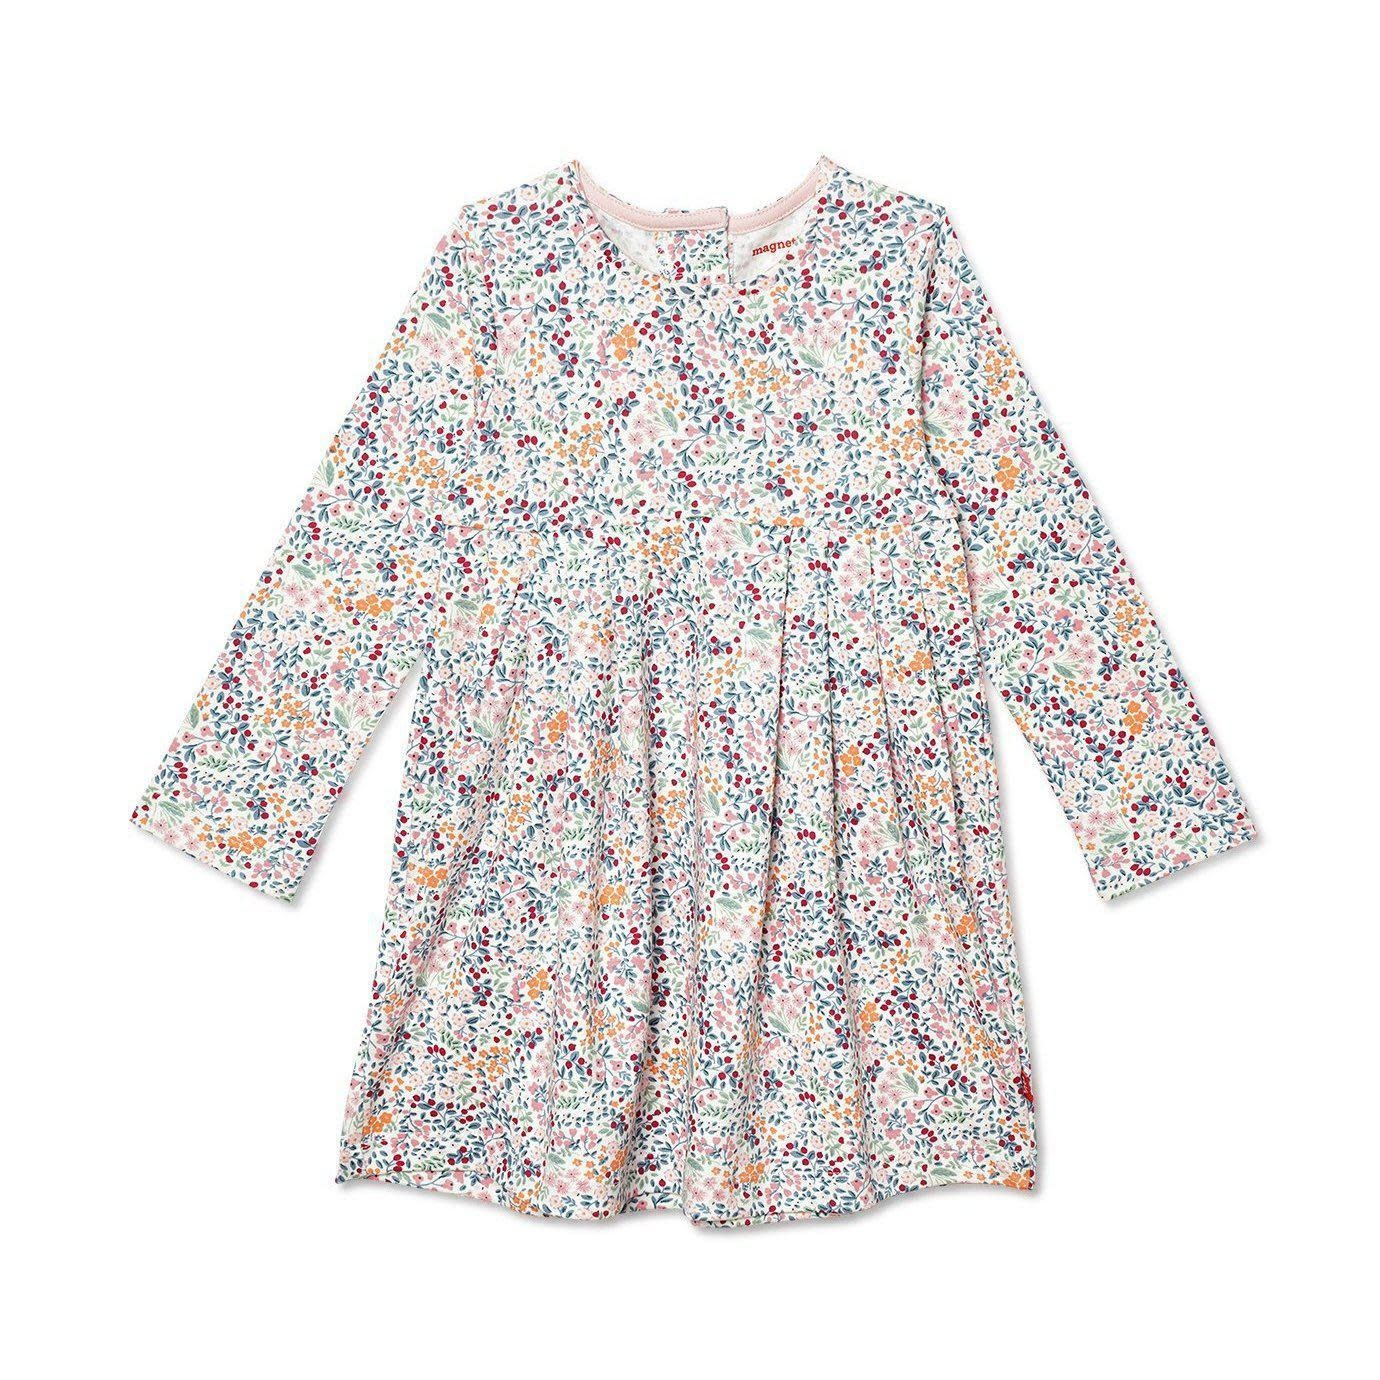 Magnificent Baby Sheffield Organic Toddler Dress